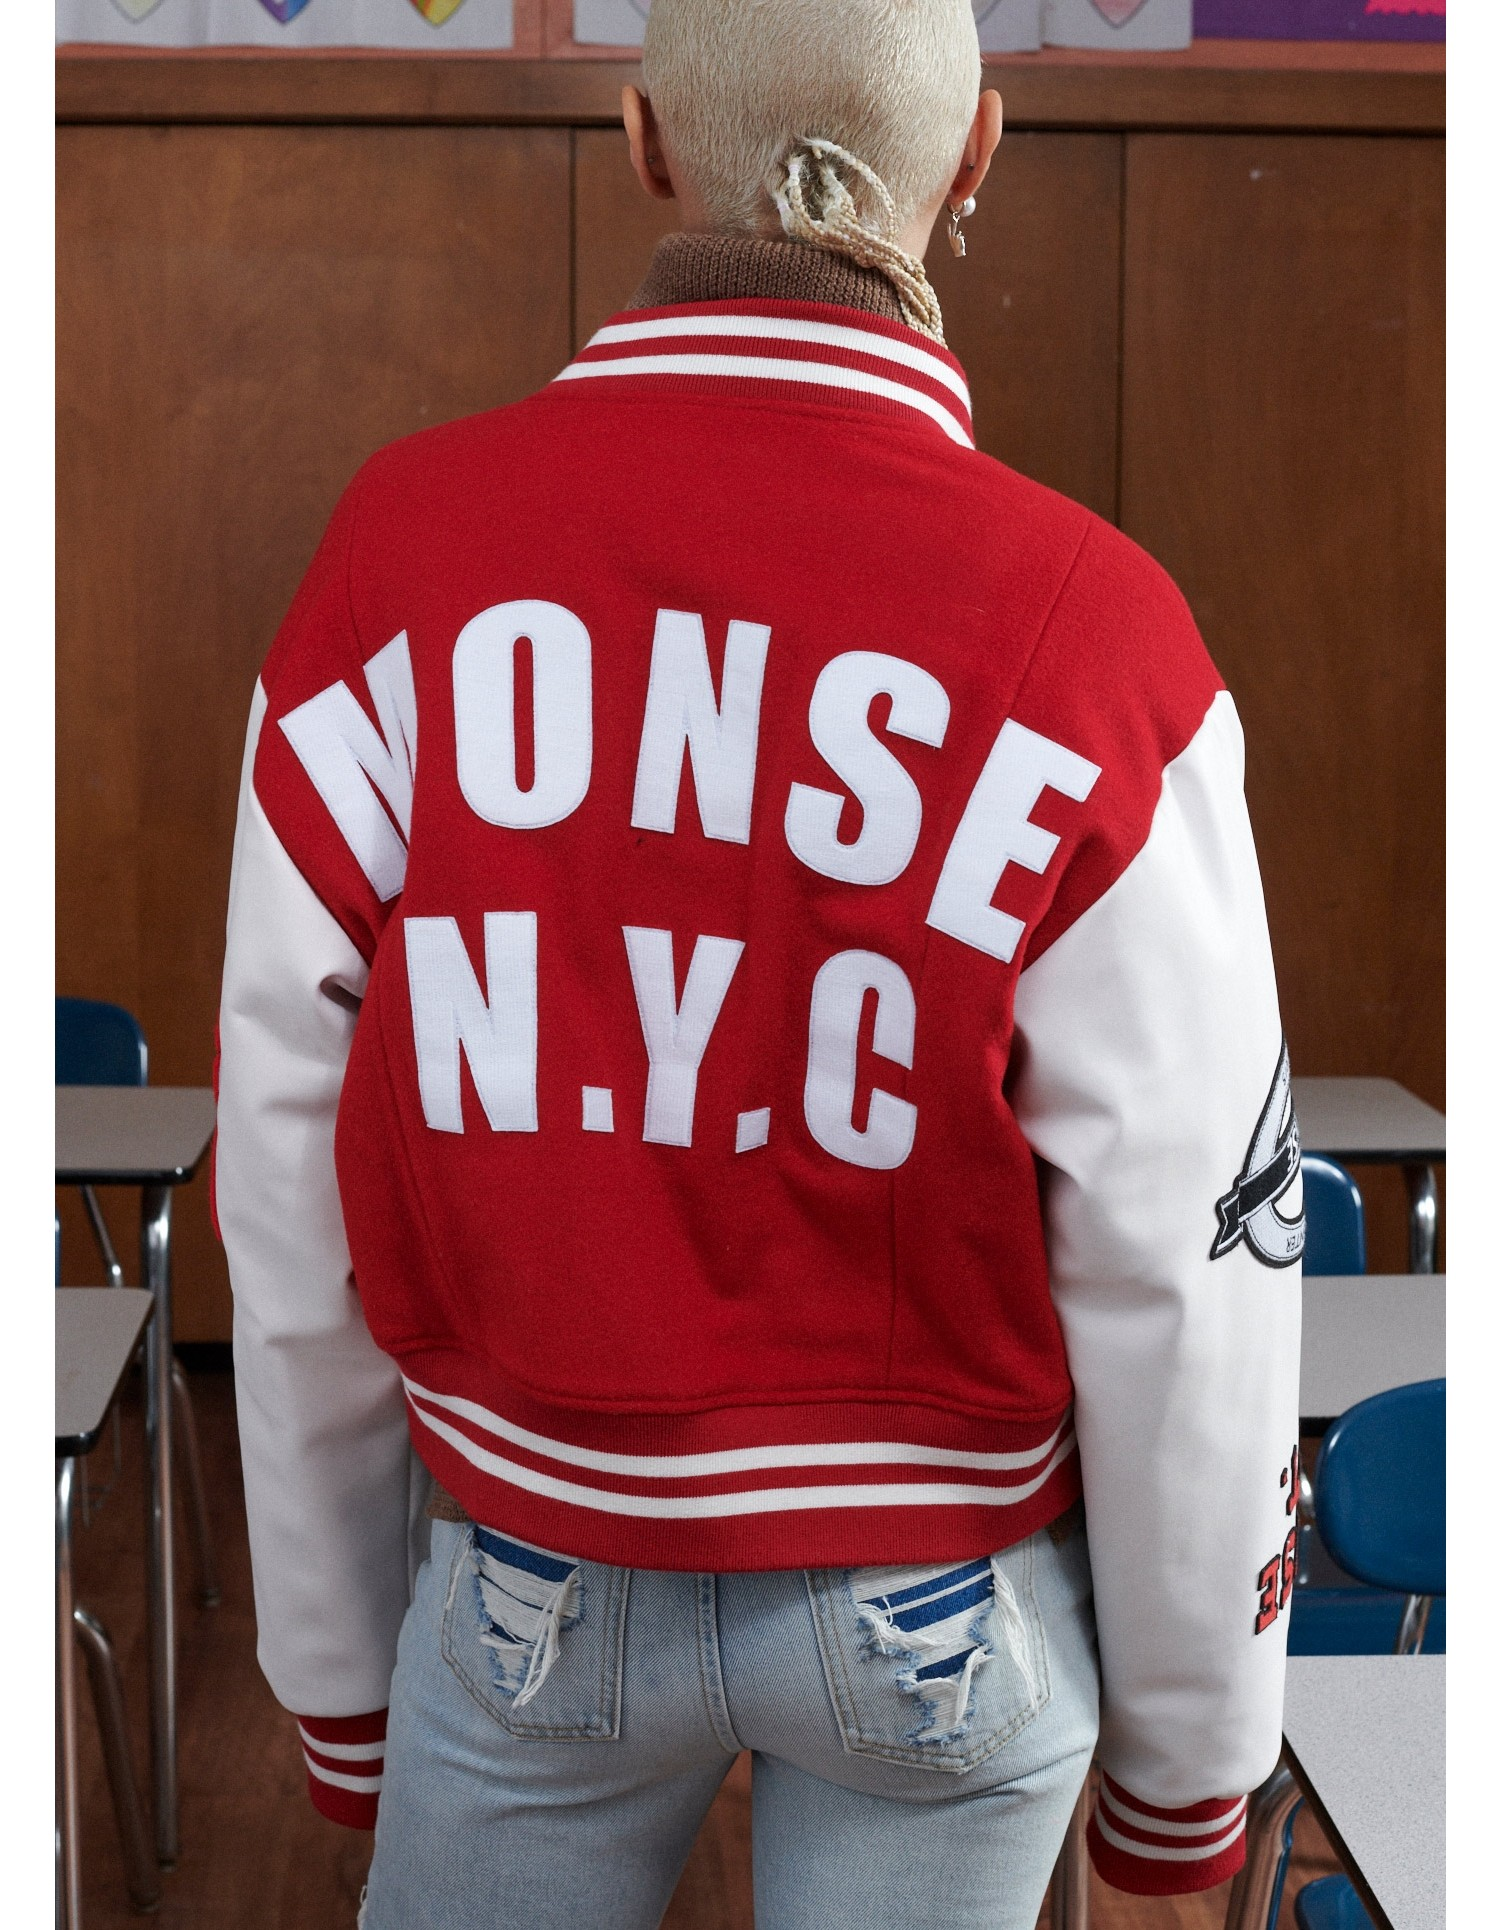 MONSE Cropped Letterman Jacket in White and Scarlet on Model Back View